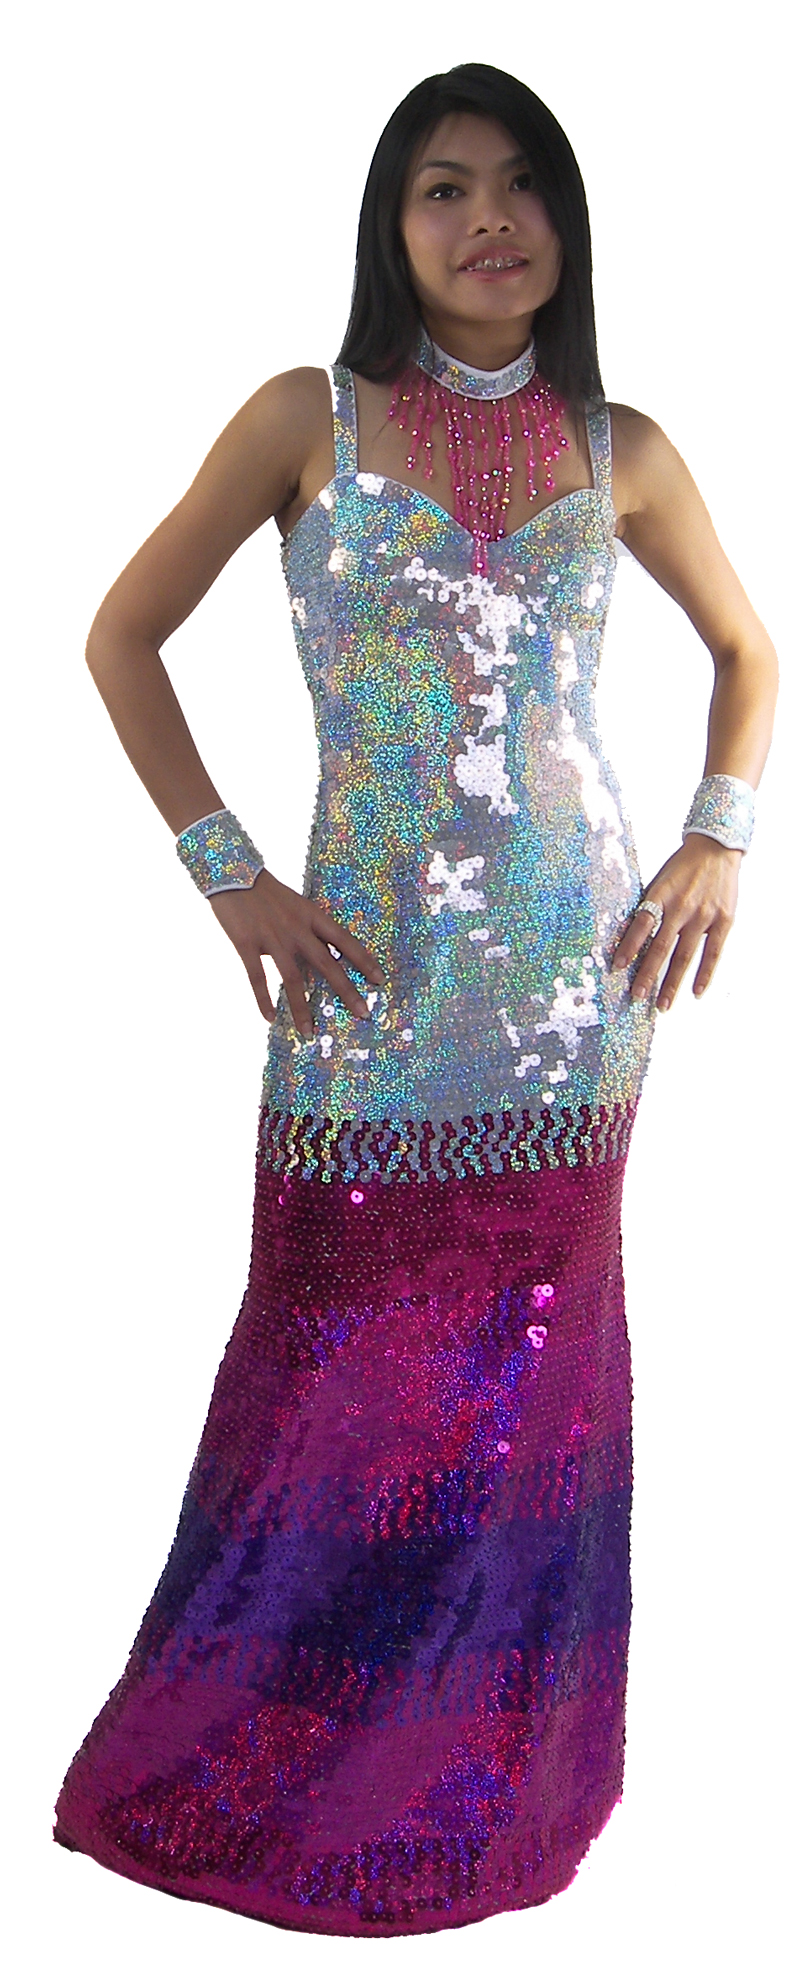 https://michaeljacksoncelebrityclothing.com/new-dress-designs/TM0920-sequin-long-dress.jpg